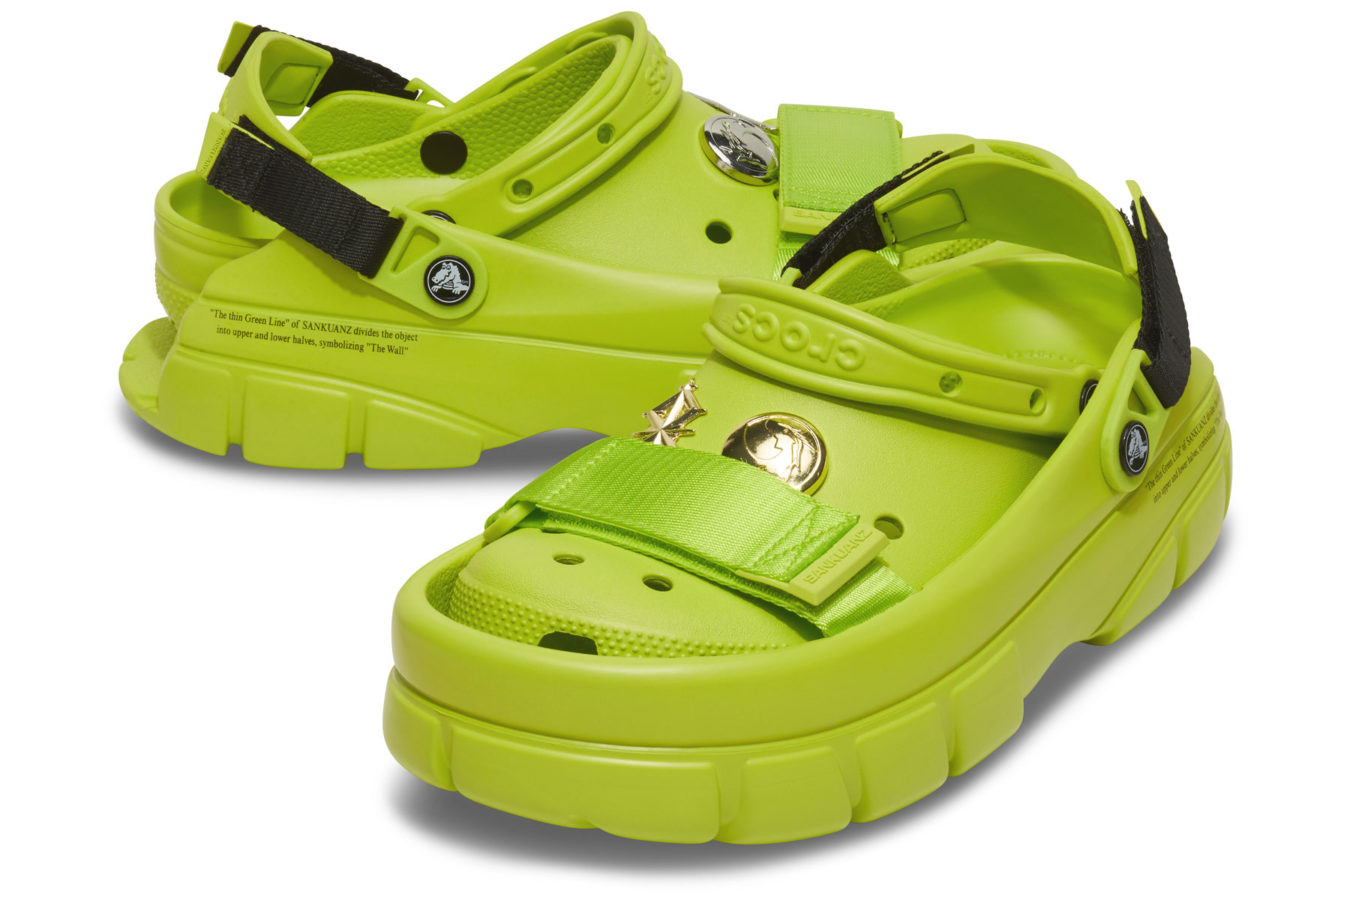 From ridicule to winning over high fashion, how did Crocs defy the odds?